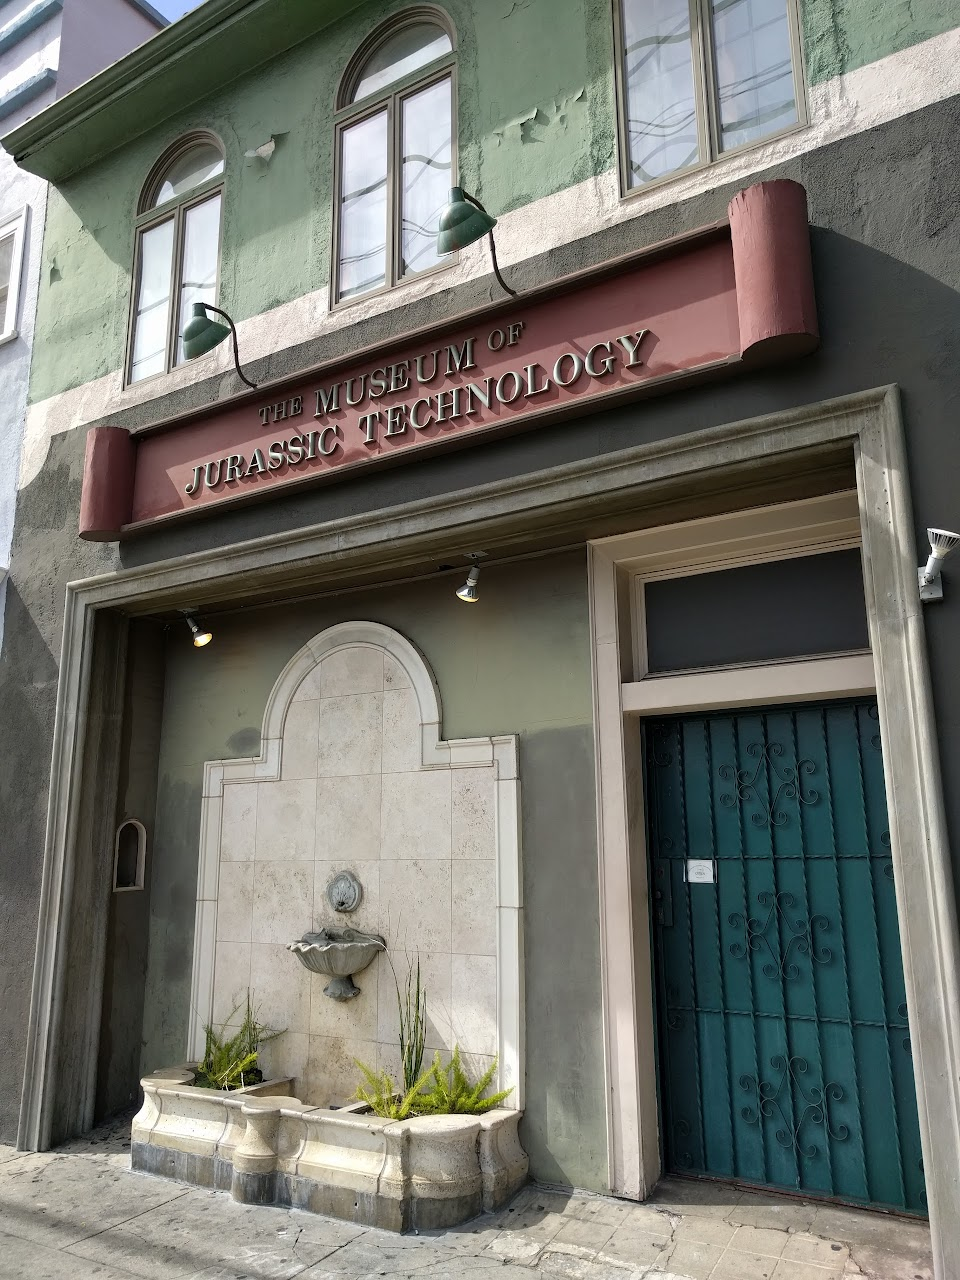 The Museum of Jurassic Technology